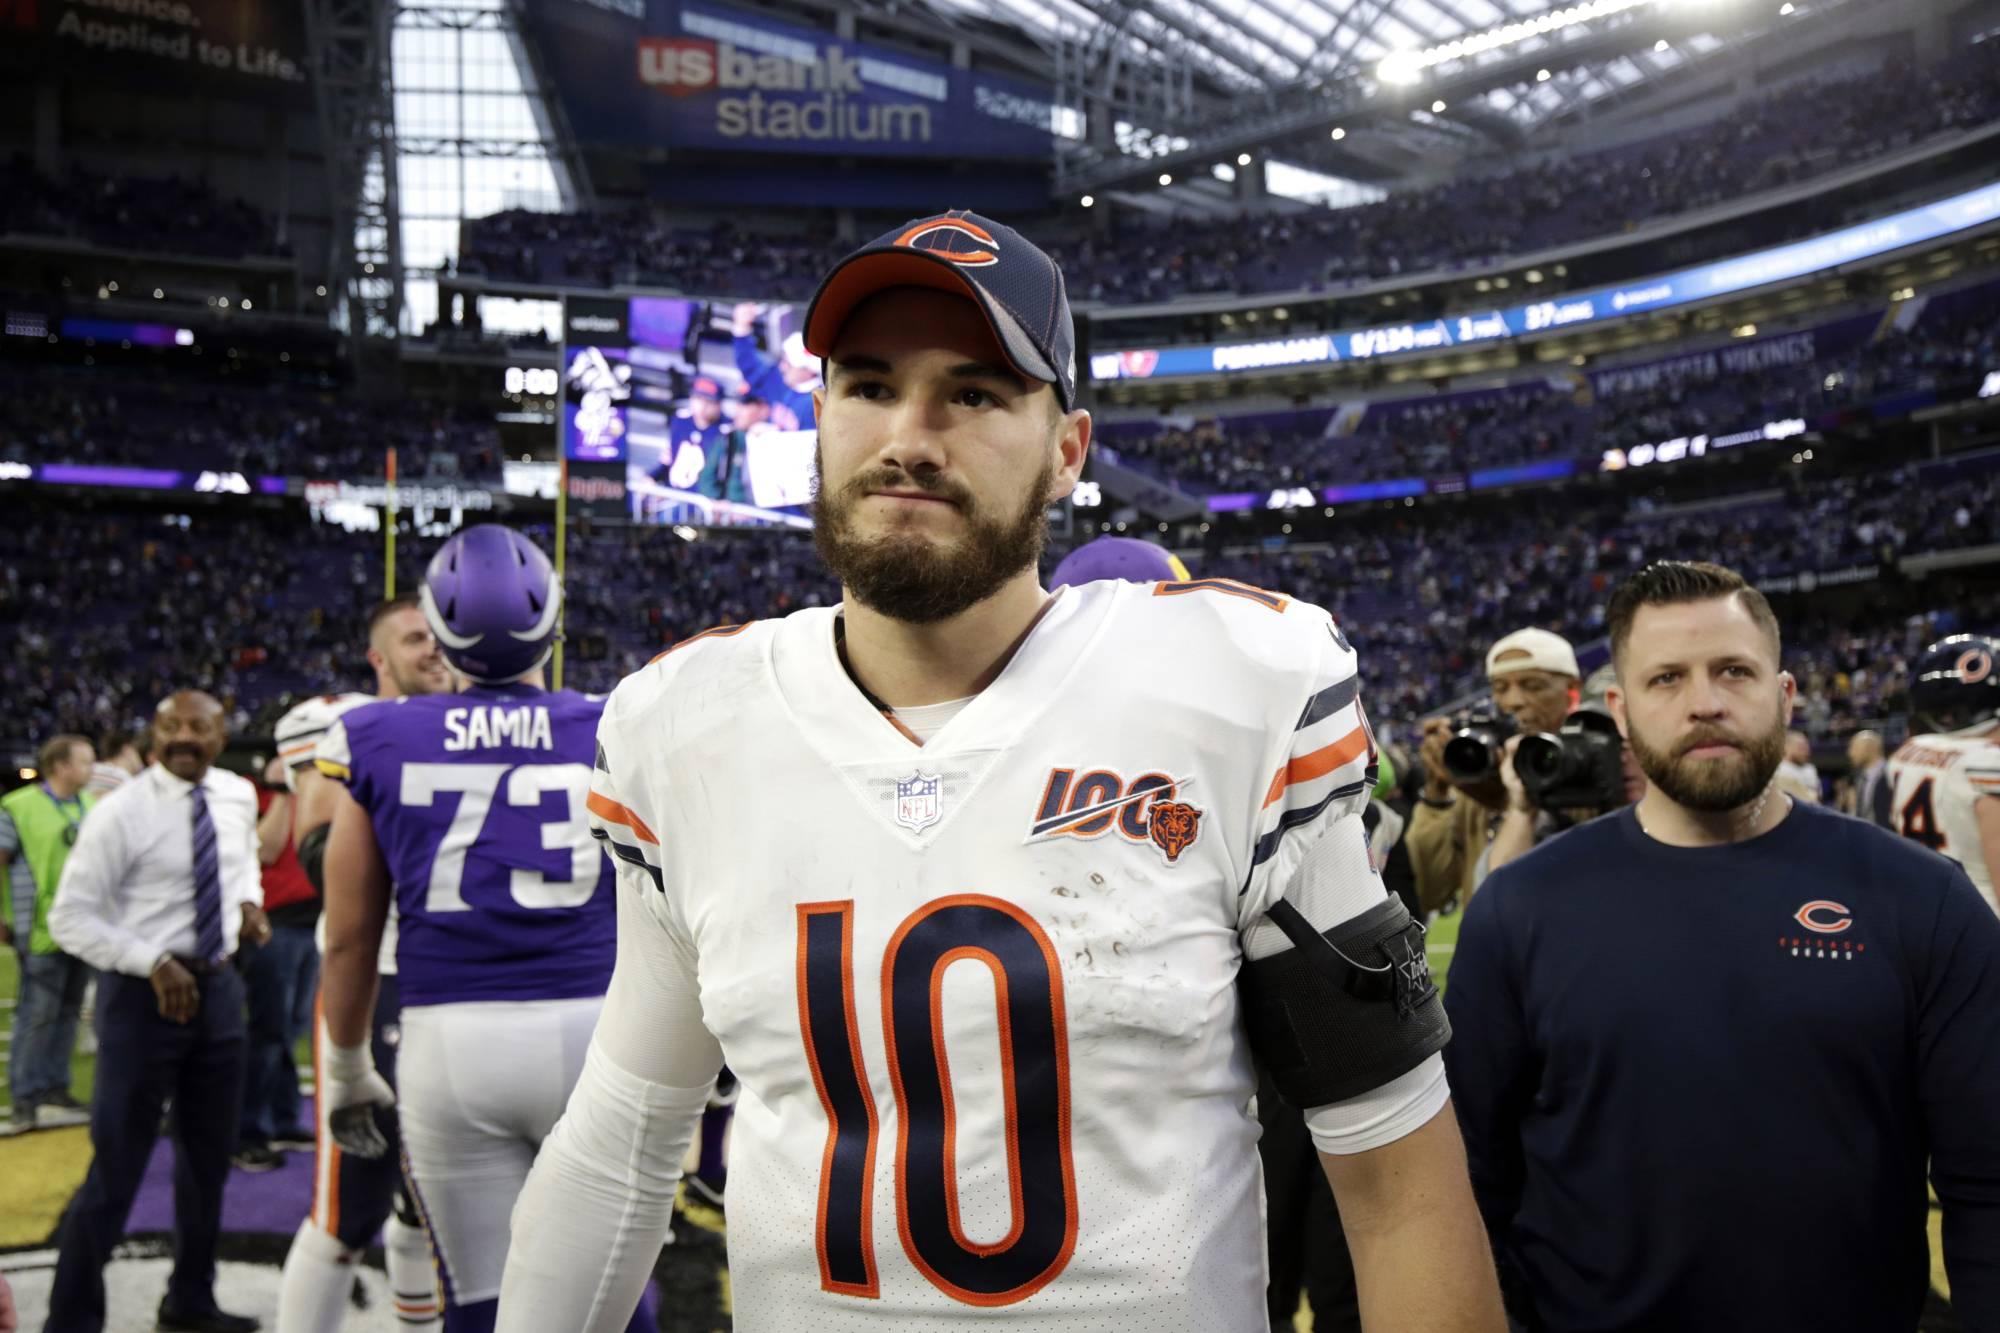 Bears quarterback Mitchell Trubisky walks off the field after an NFL game against the Vikings on Dec. 29, 2019, in Minneapolis, Minnesota. | AP